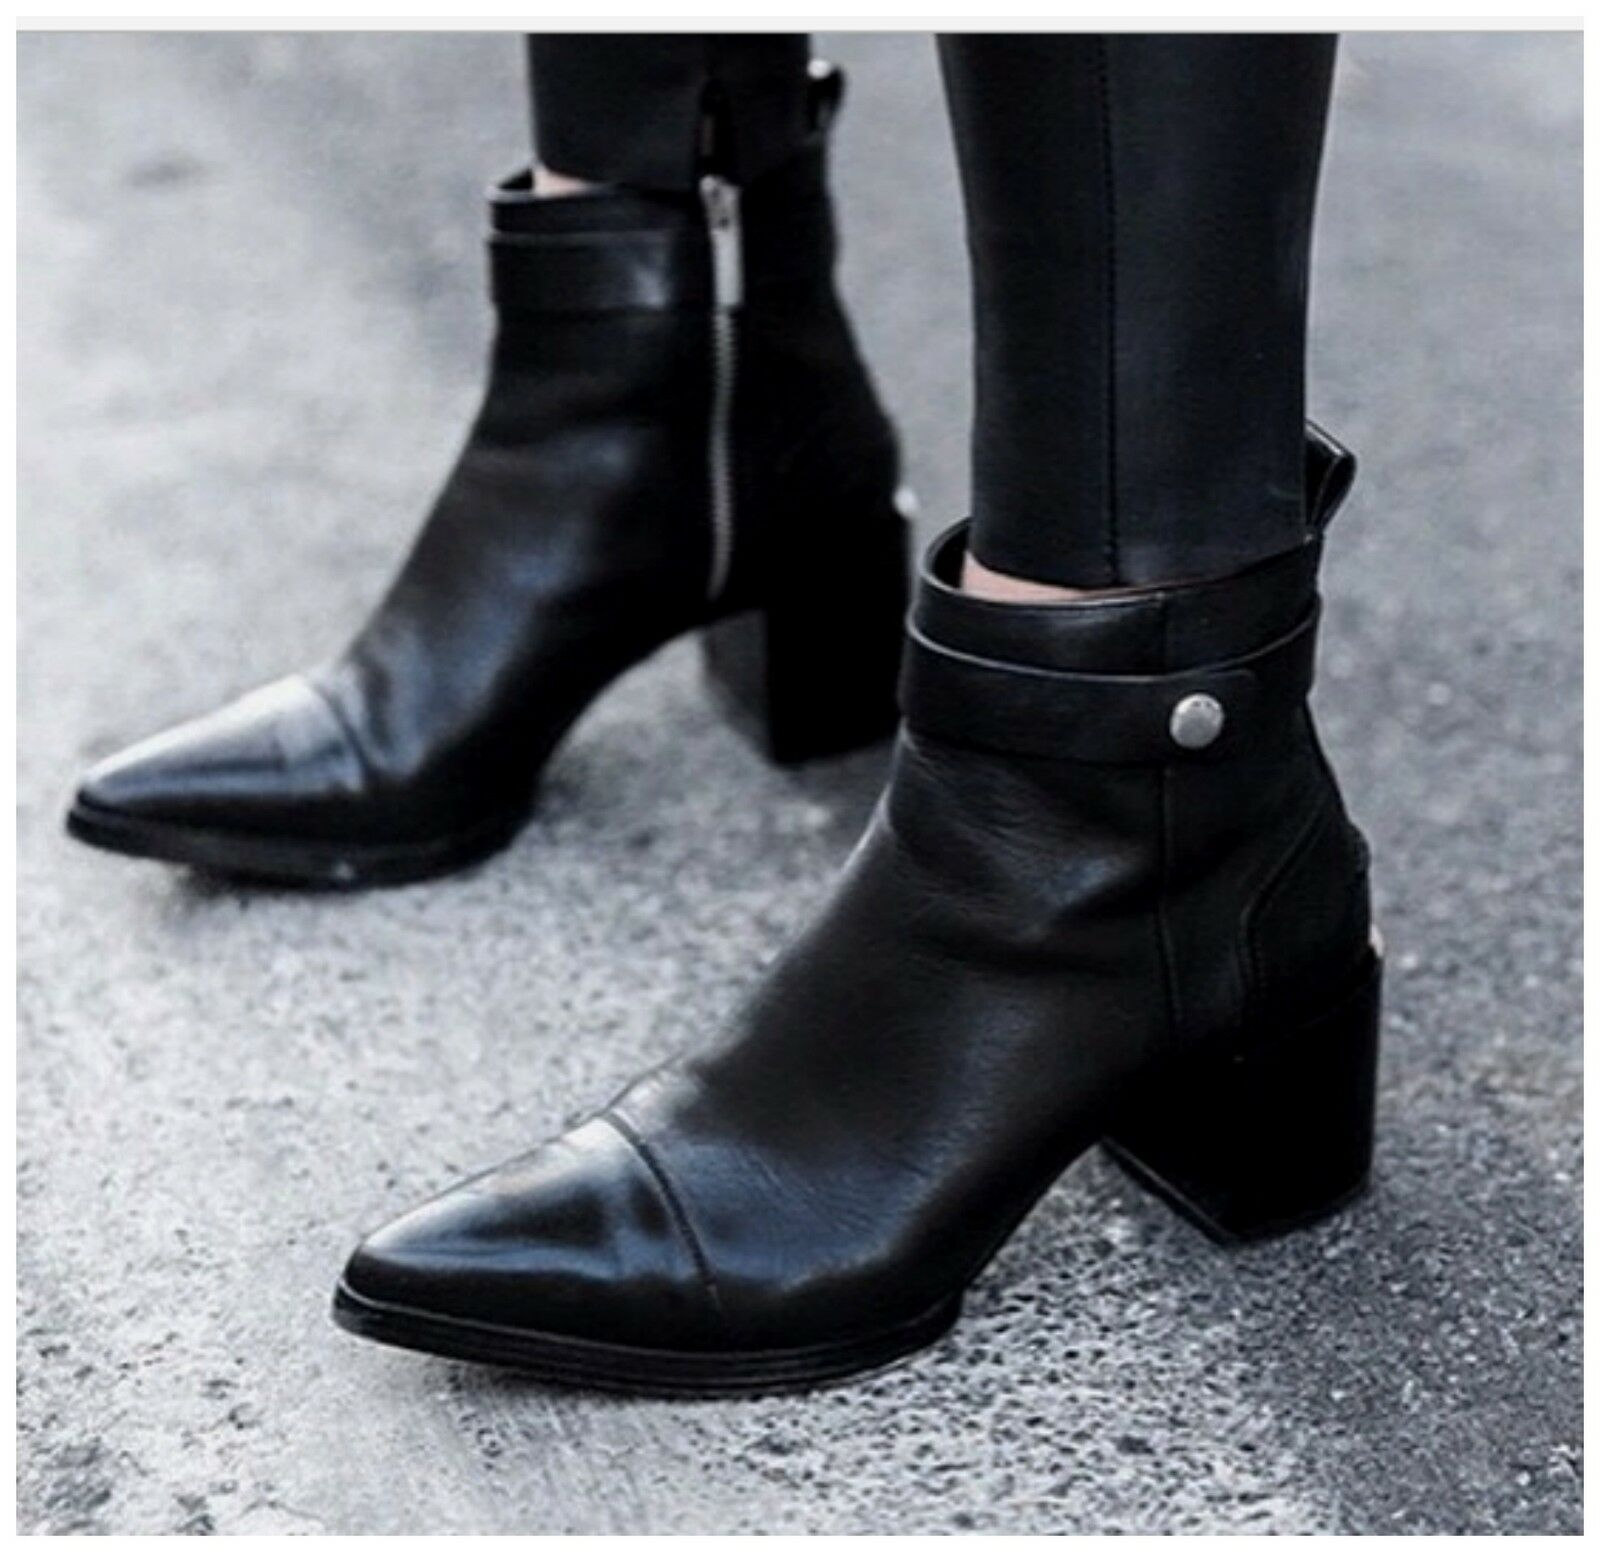 ZARA WOMAN BLACK GENUINE BOOTS LEATHER PIXIE POINTED ANKLE BOOTS GENUINE NEW SHOES COAT DRESS fdfd10